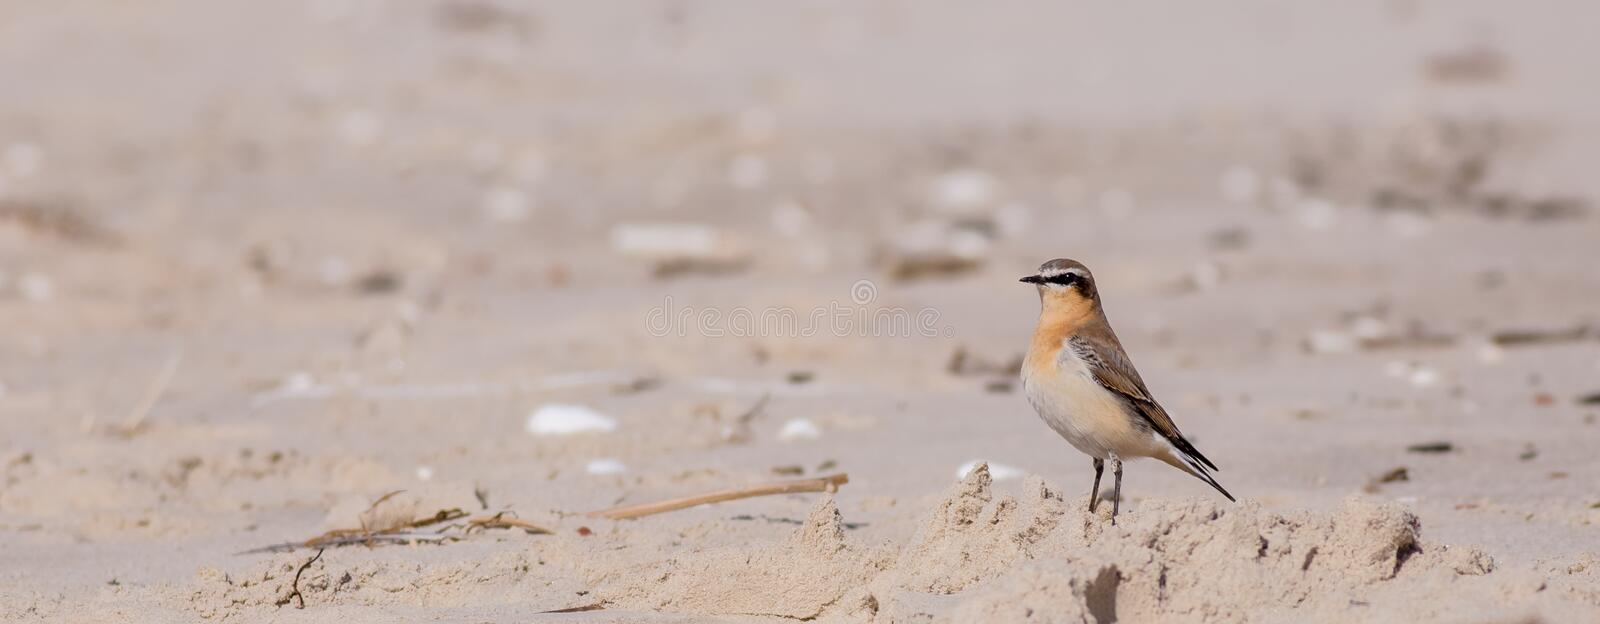 Northern Wheatear - Oenanthe oenanthe royalty free stock photography